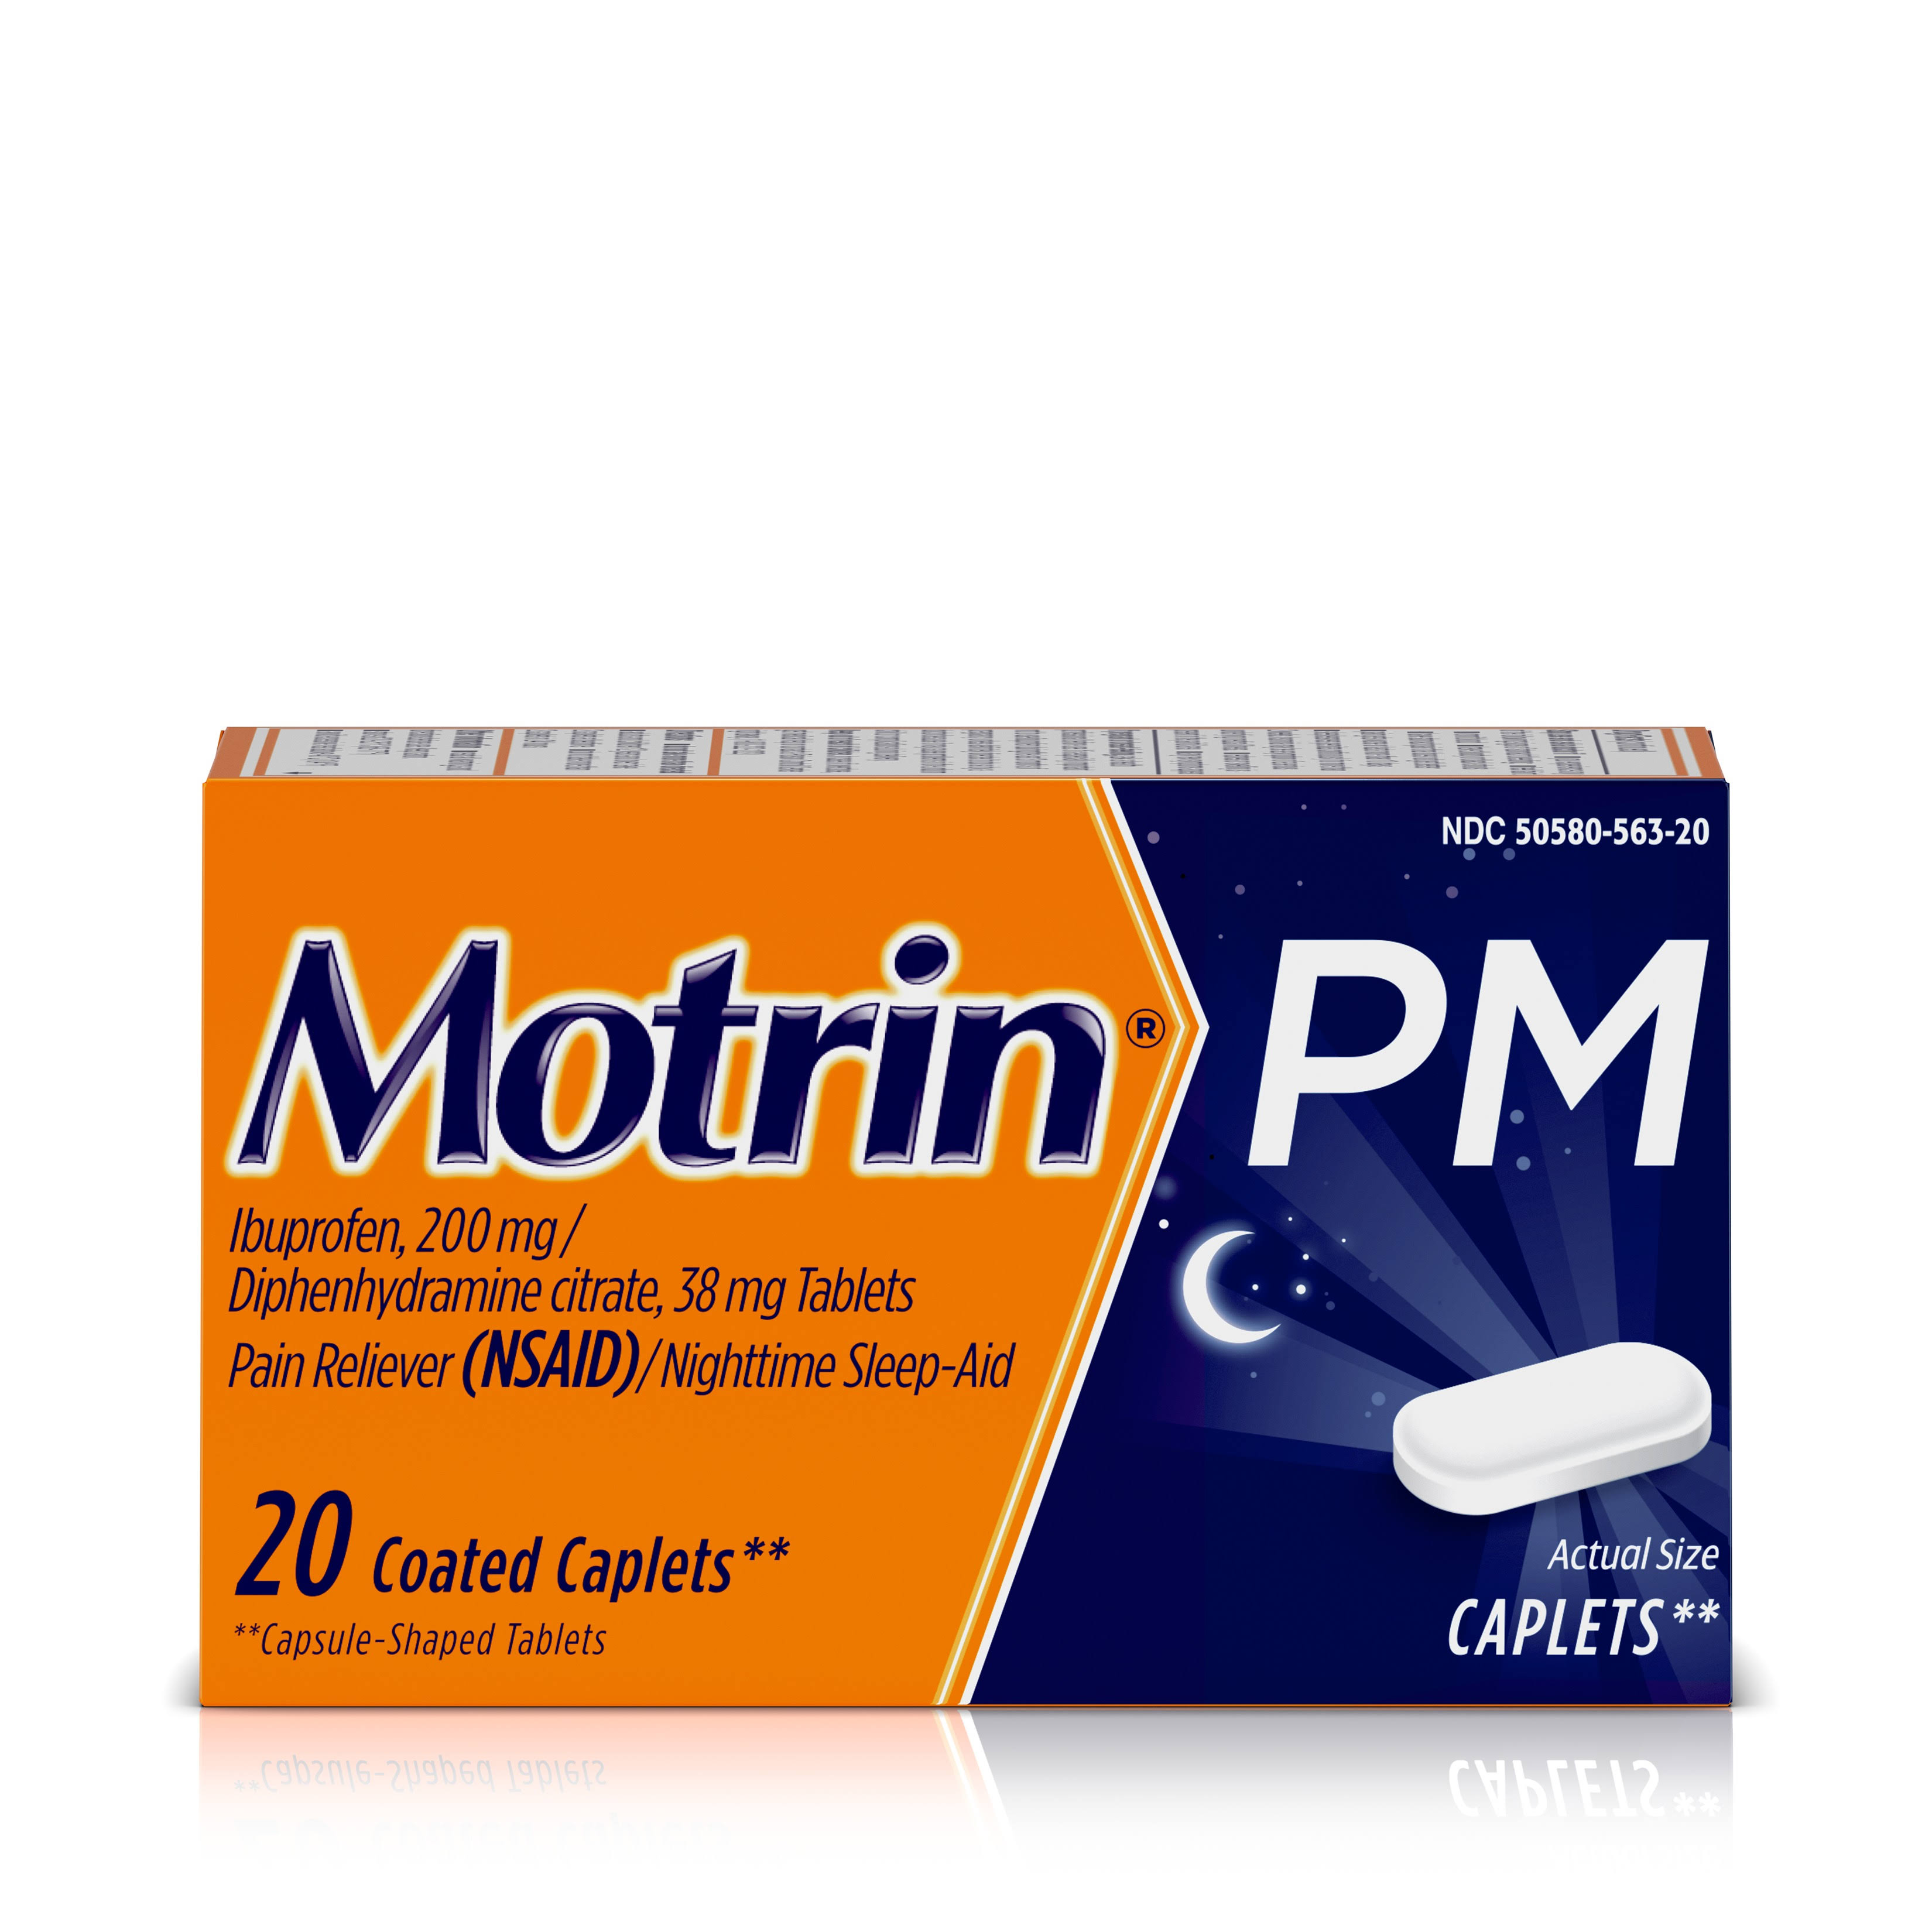 Motrin PM Pain Reliever Nighttime Sleep-Aid - 20 Coated Caplets